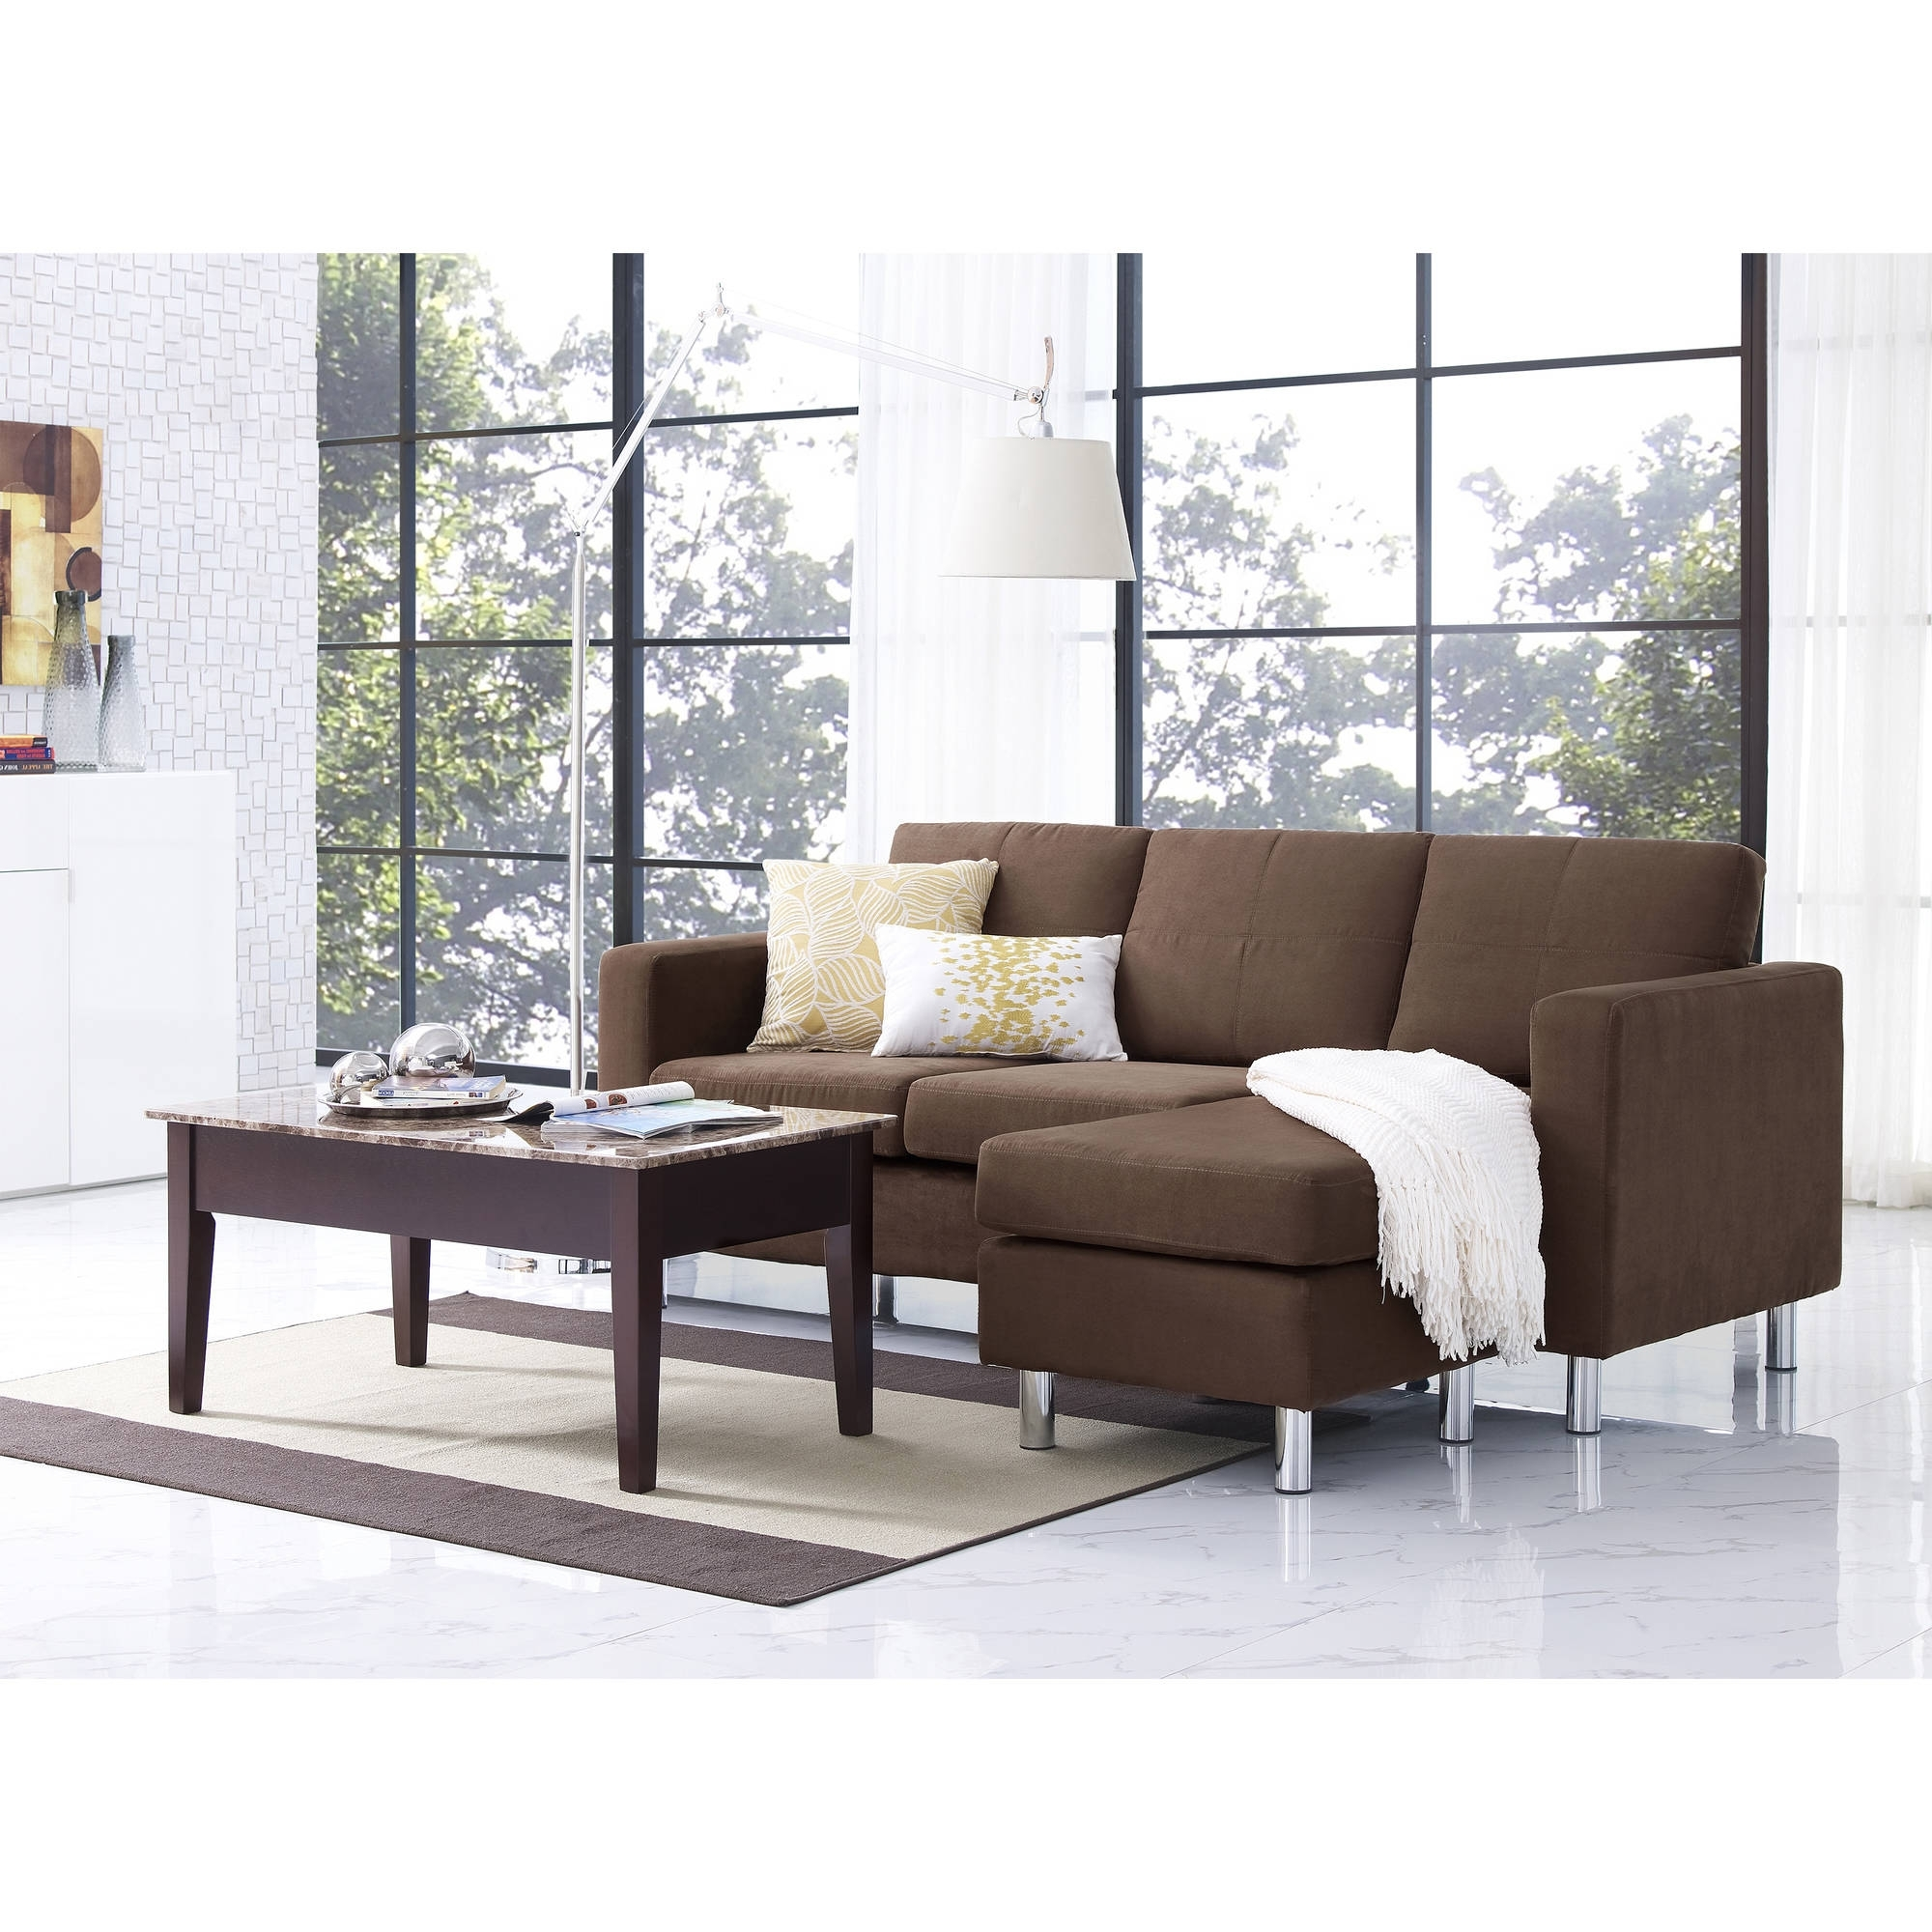 Sofa : Cheap Leather Corner Sofas Leather Couches For Sale Sleeper Inside Most Recently Released Small Sectional Sofas For Small Spaces (View 15 of 20)